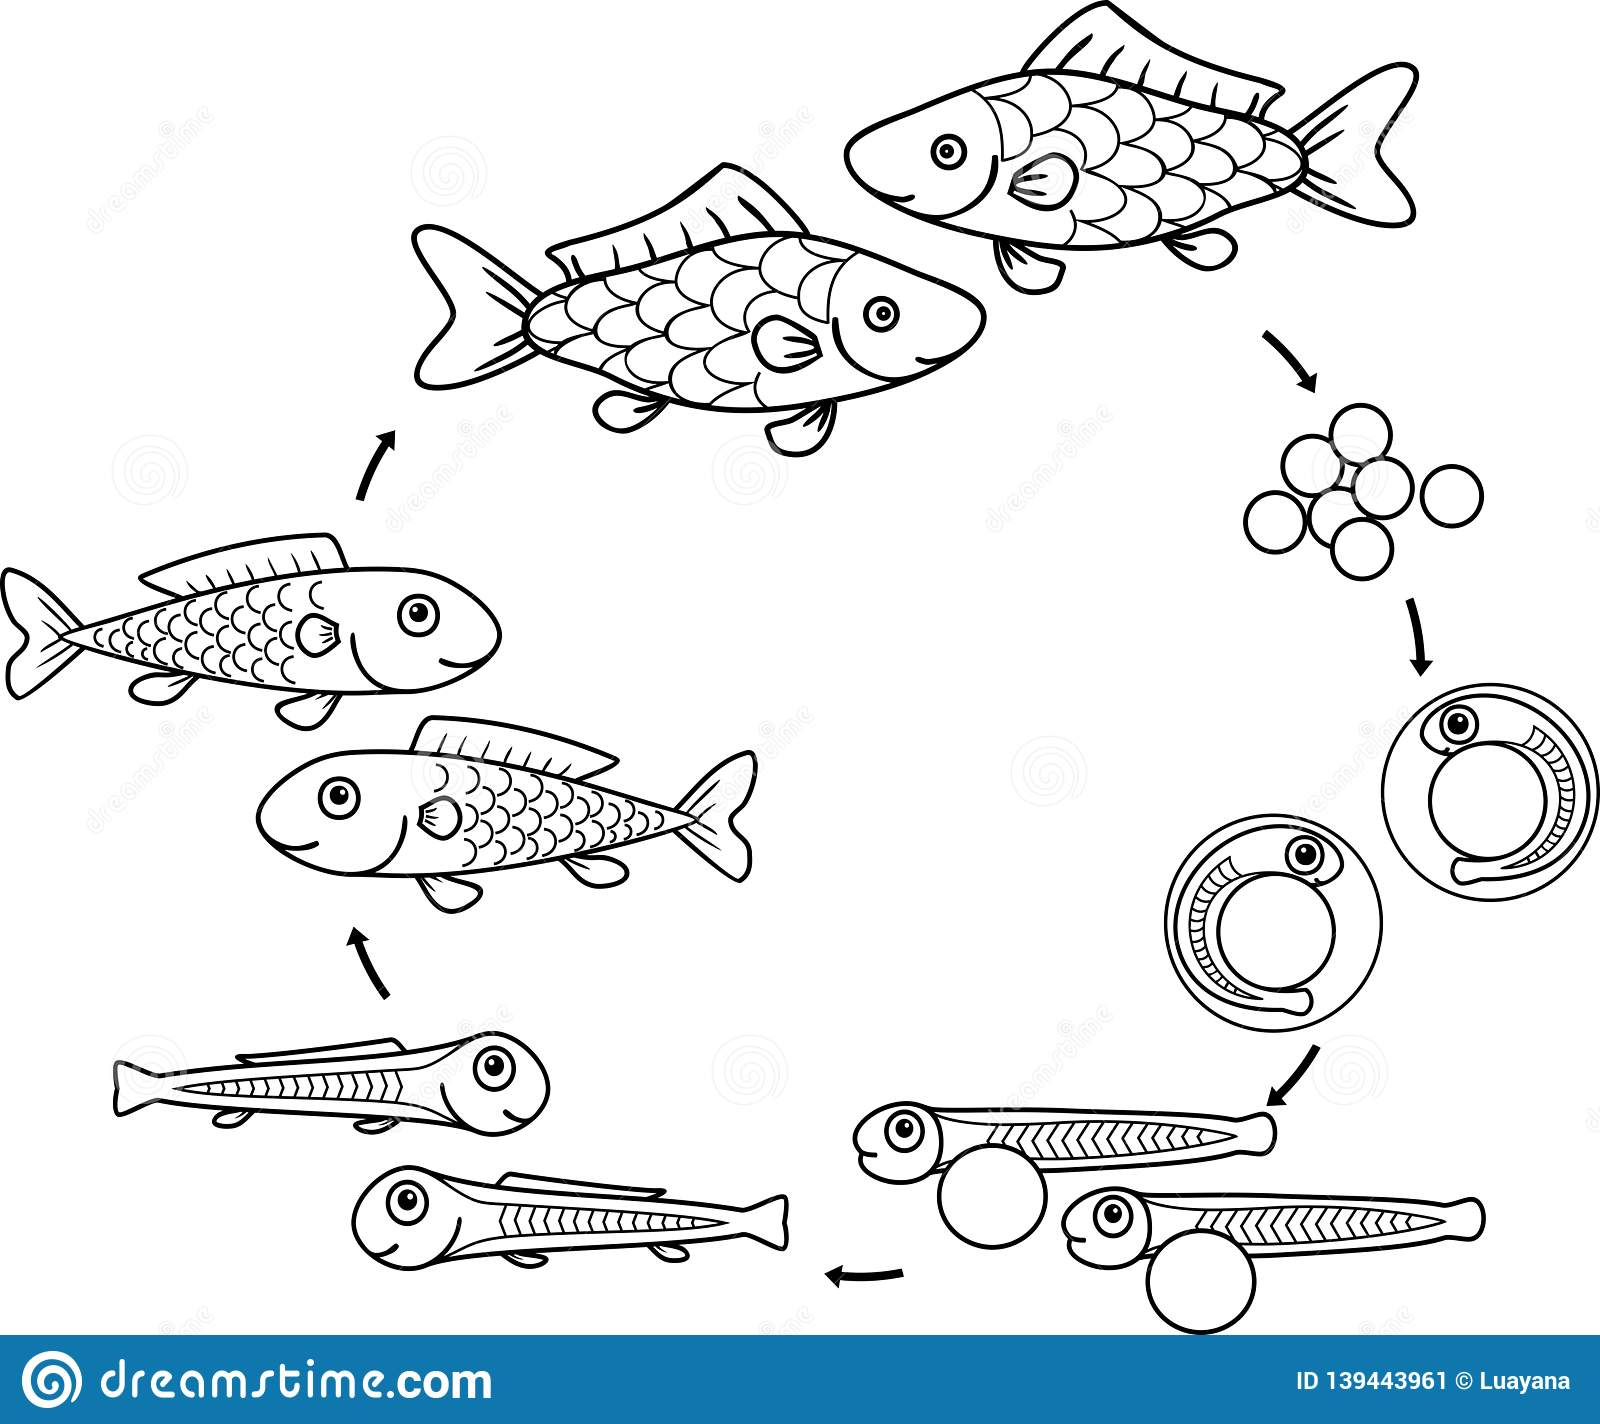 Coloring Page With Life Cycle Of Fish. Sequence Of Stages ...